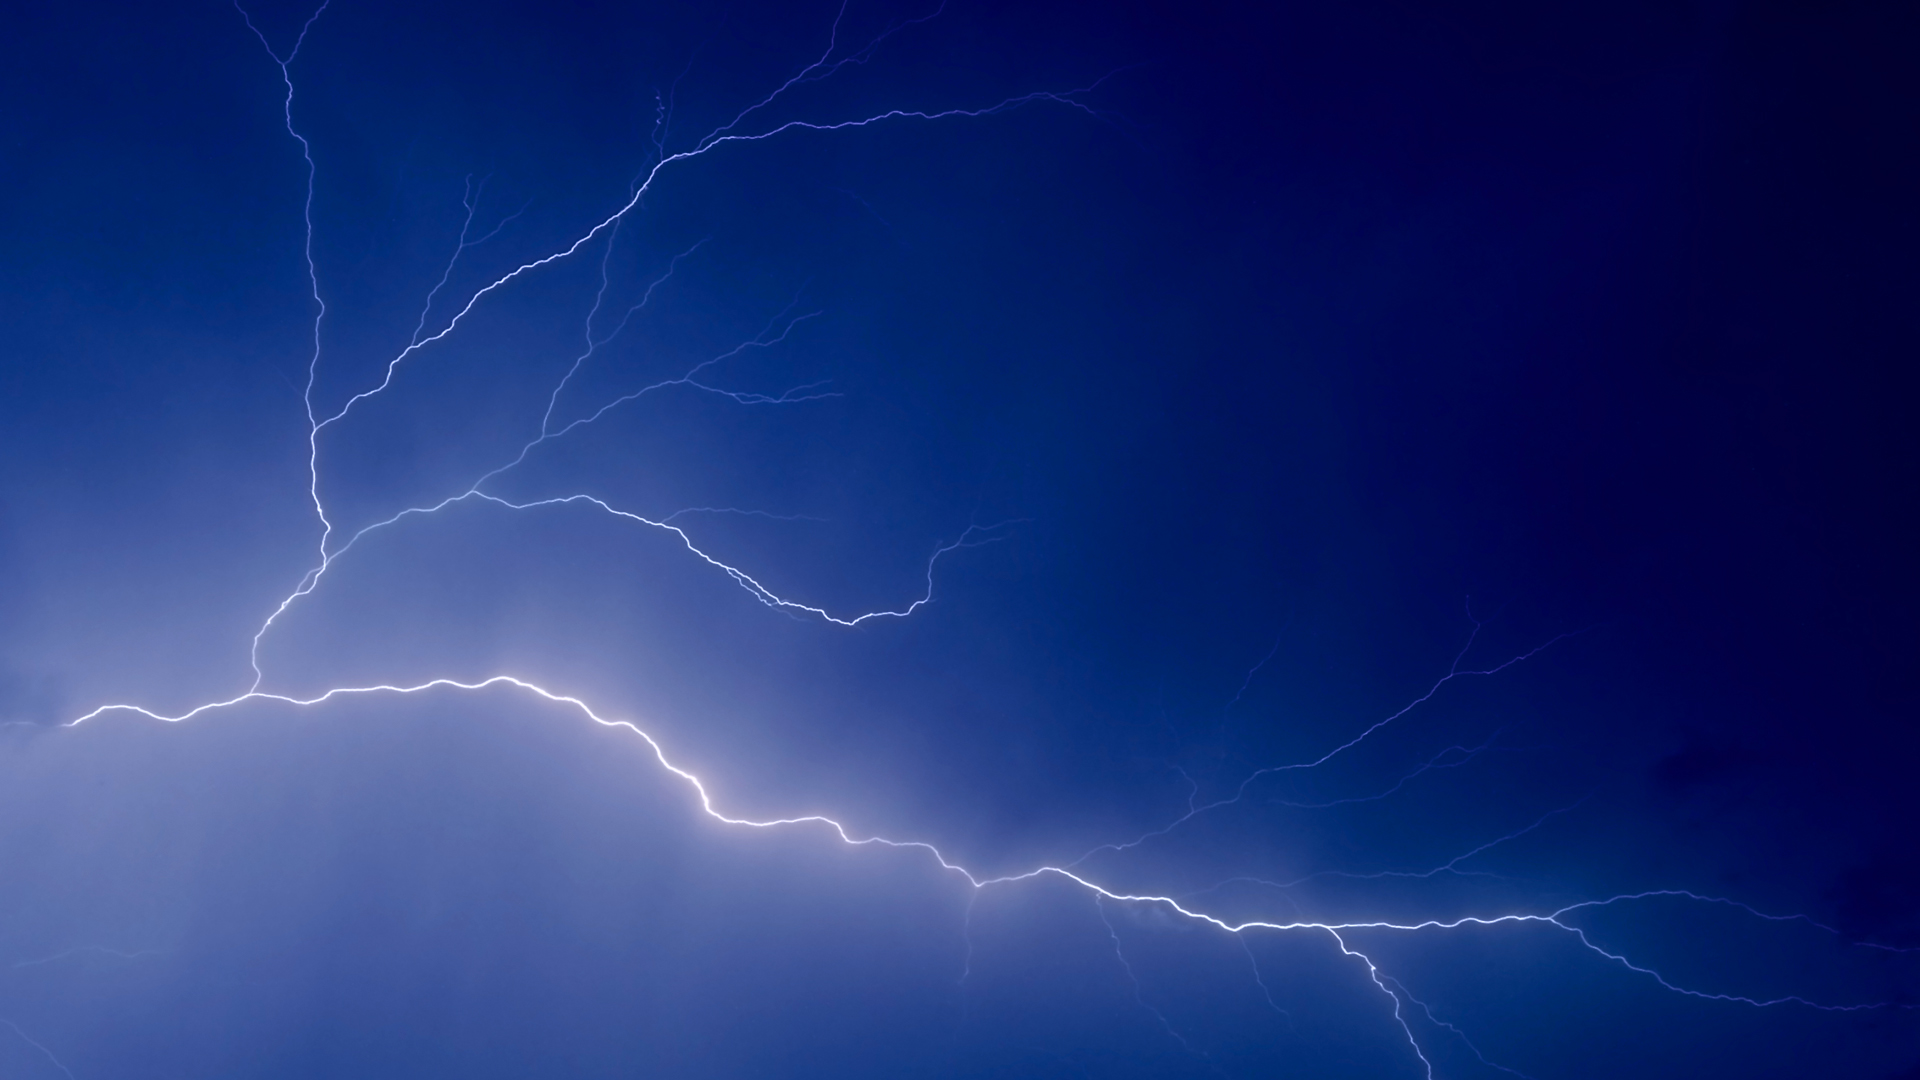 Lightning Streaks Wallpapers